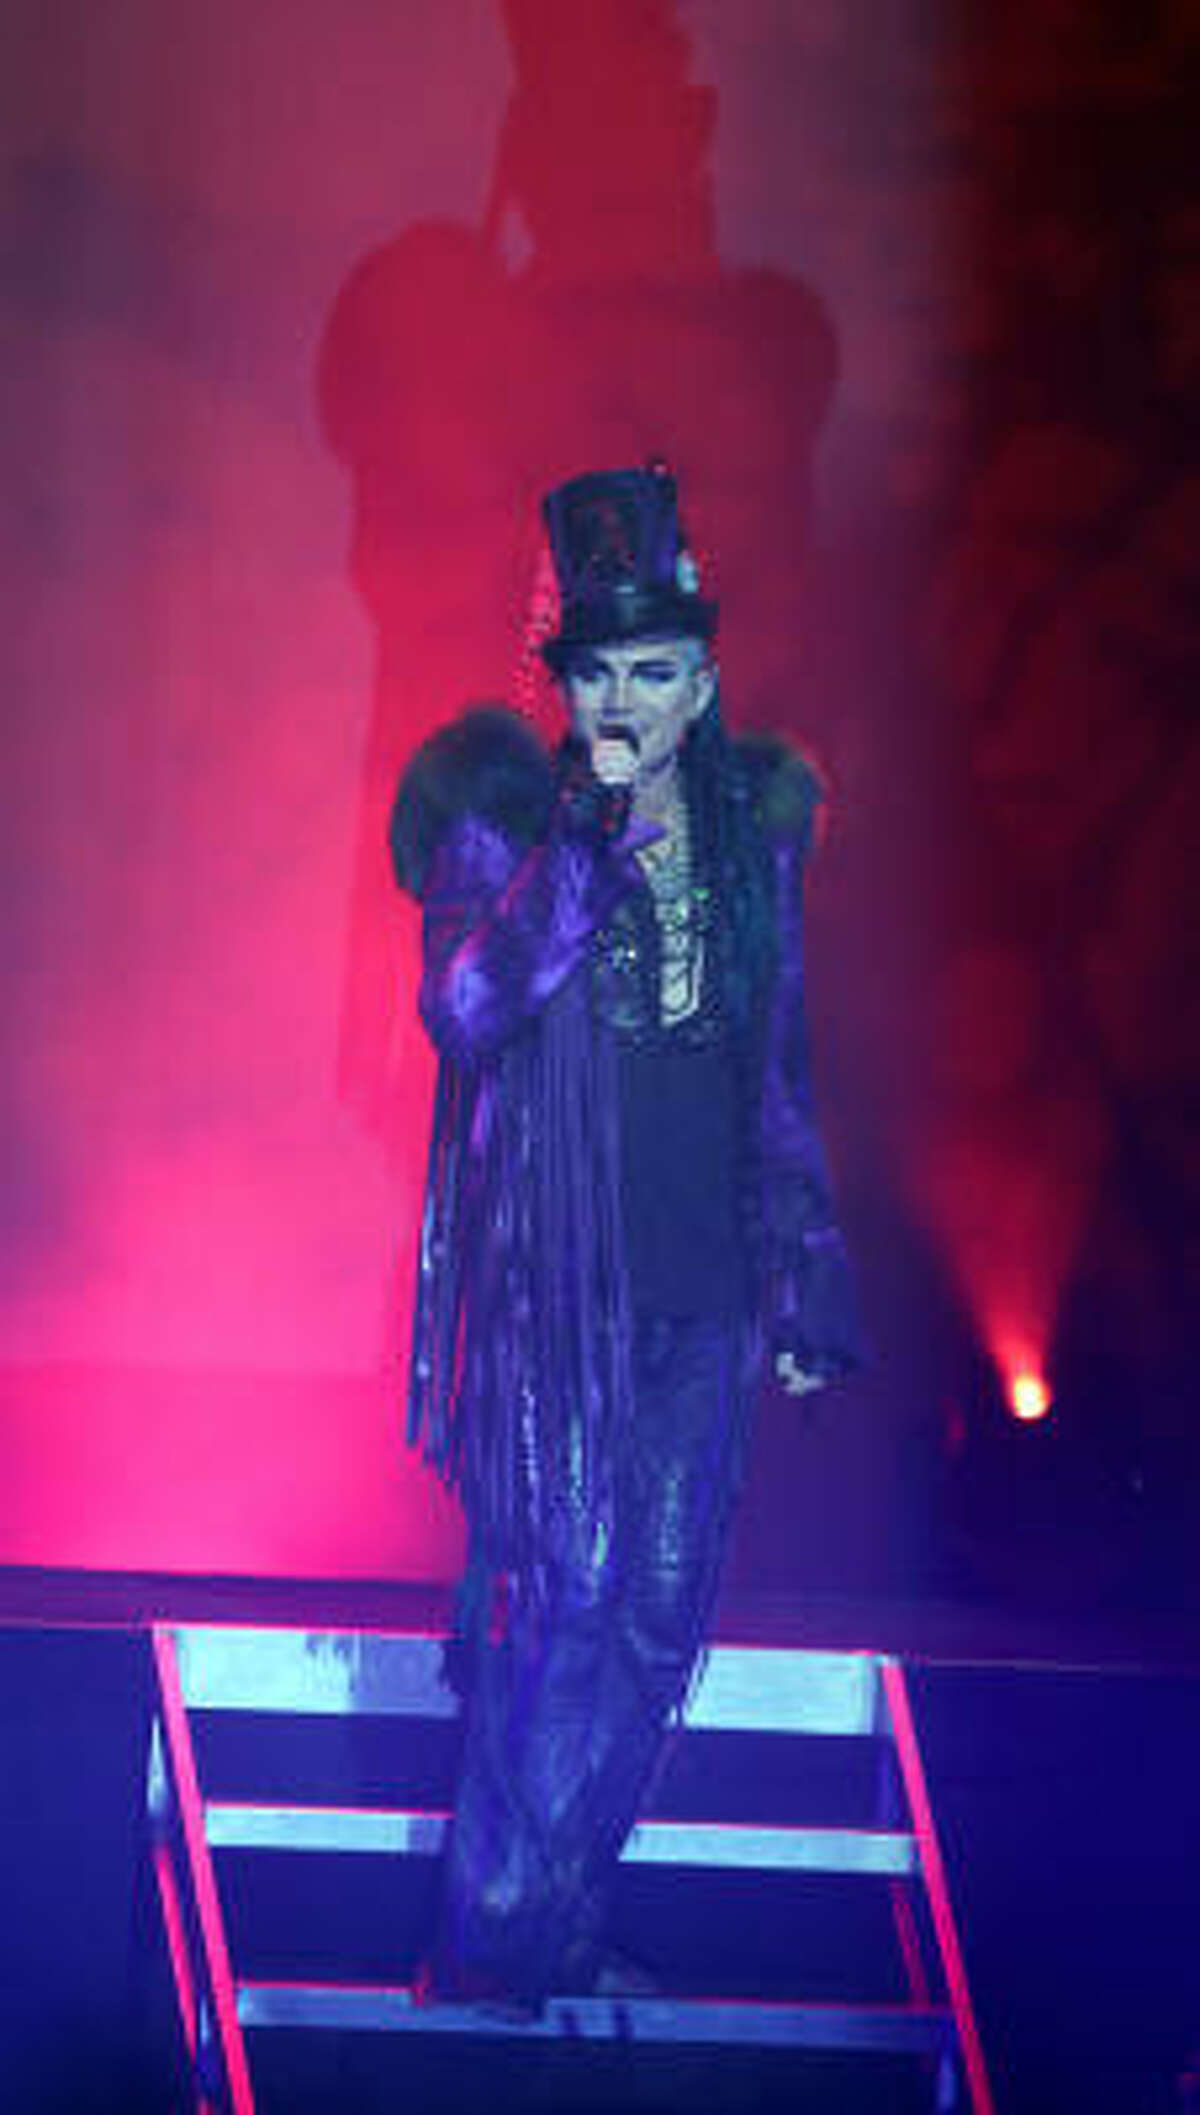 Adam Lambert performs during the Glam Nation Tour at the Hobby Center in Houston, Texas.